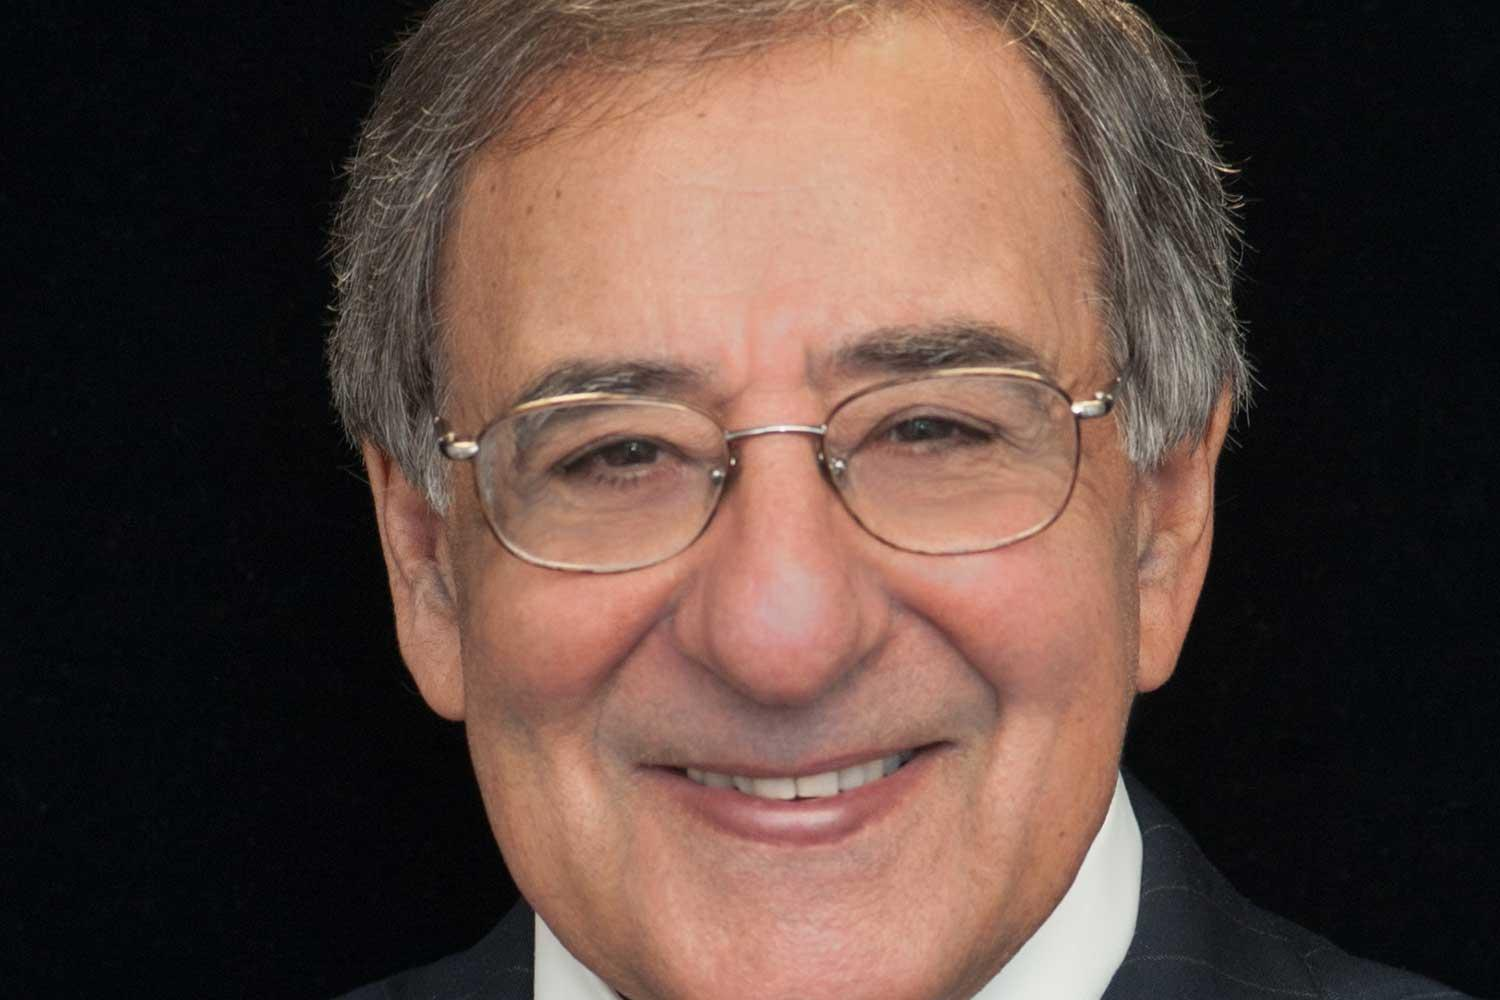 Portrait of Leon Panetta